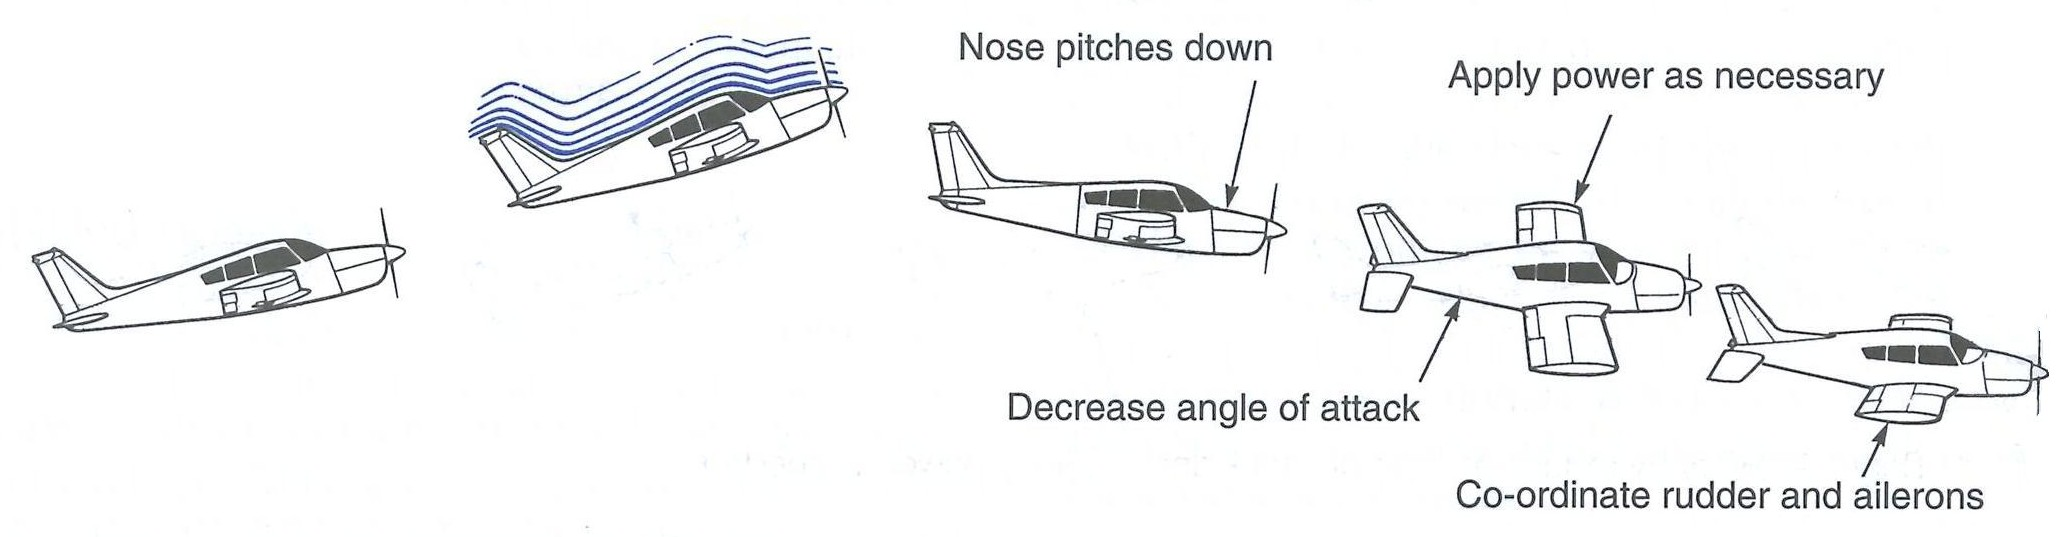 Full Stall Recovery from the Canadian Flight Training Manual.